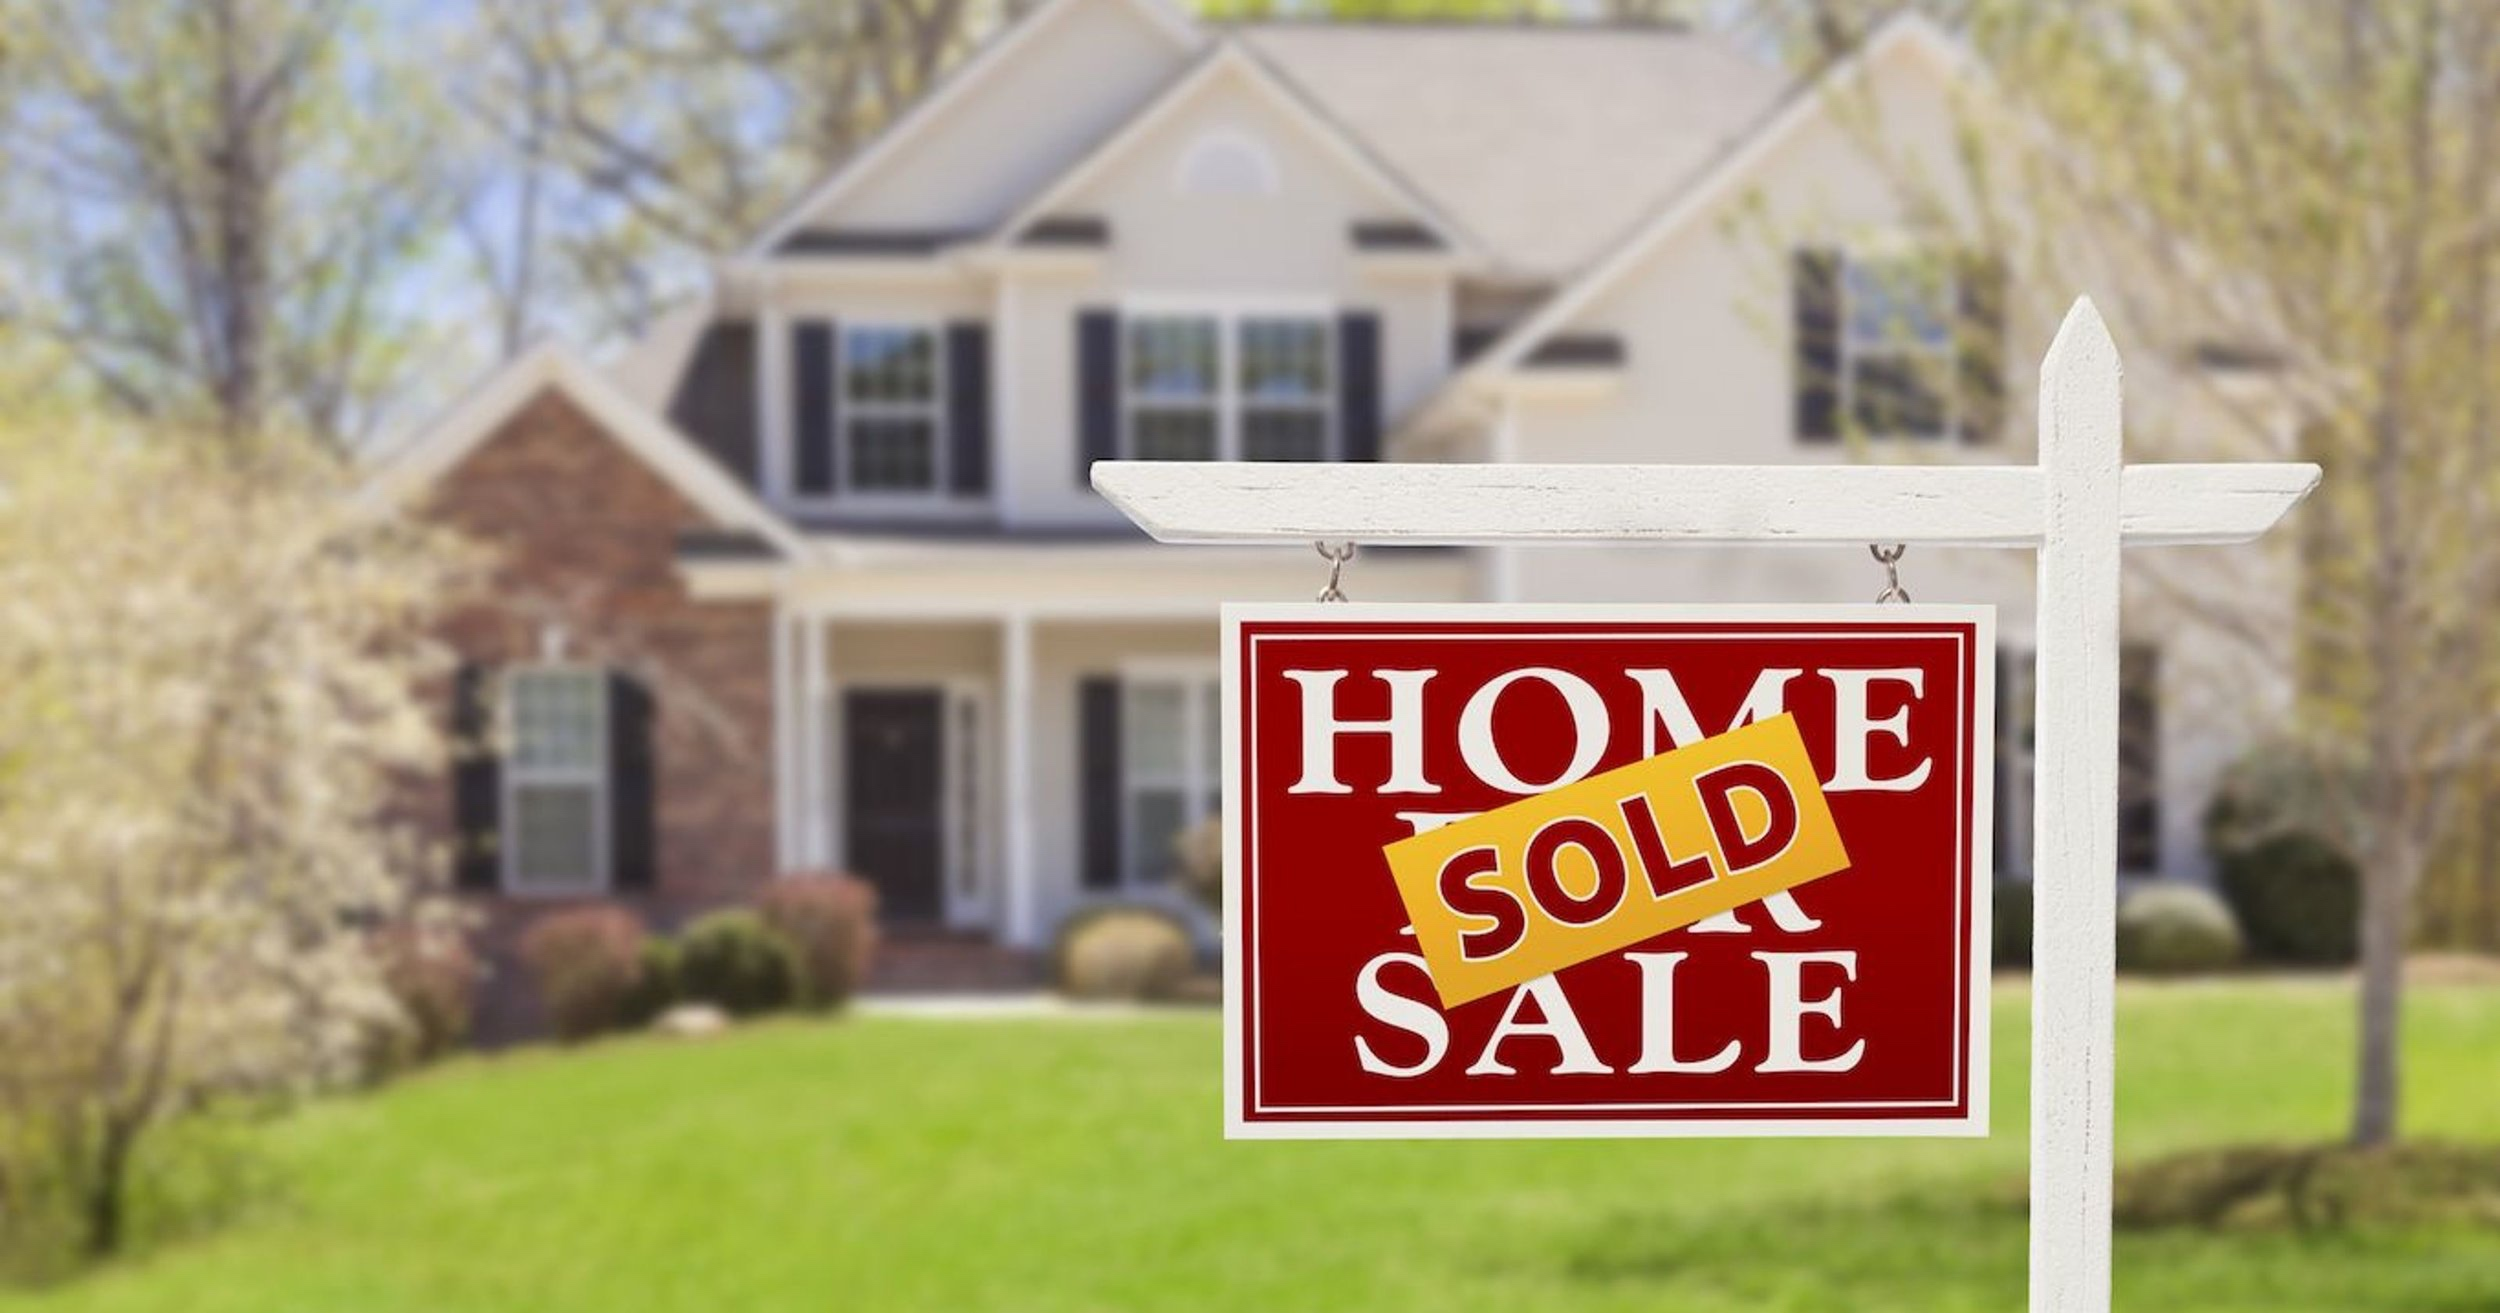 My strategy - Every house is different, but I've learned that following some simple rules can help any house sell for top dollar.